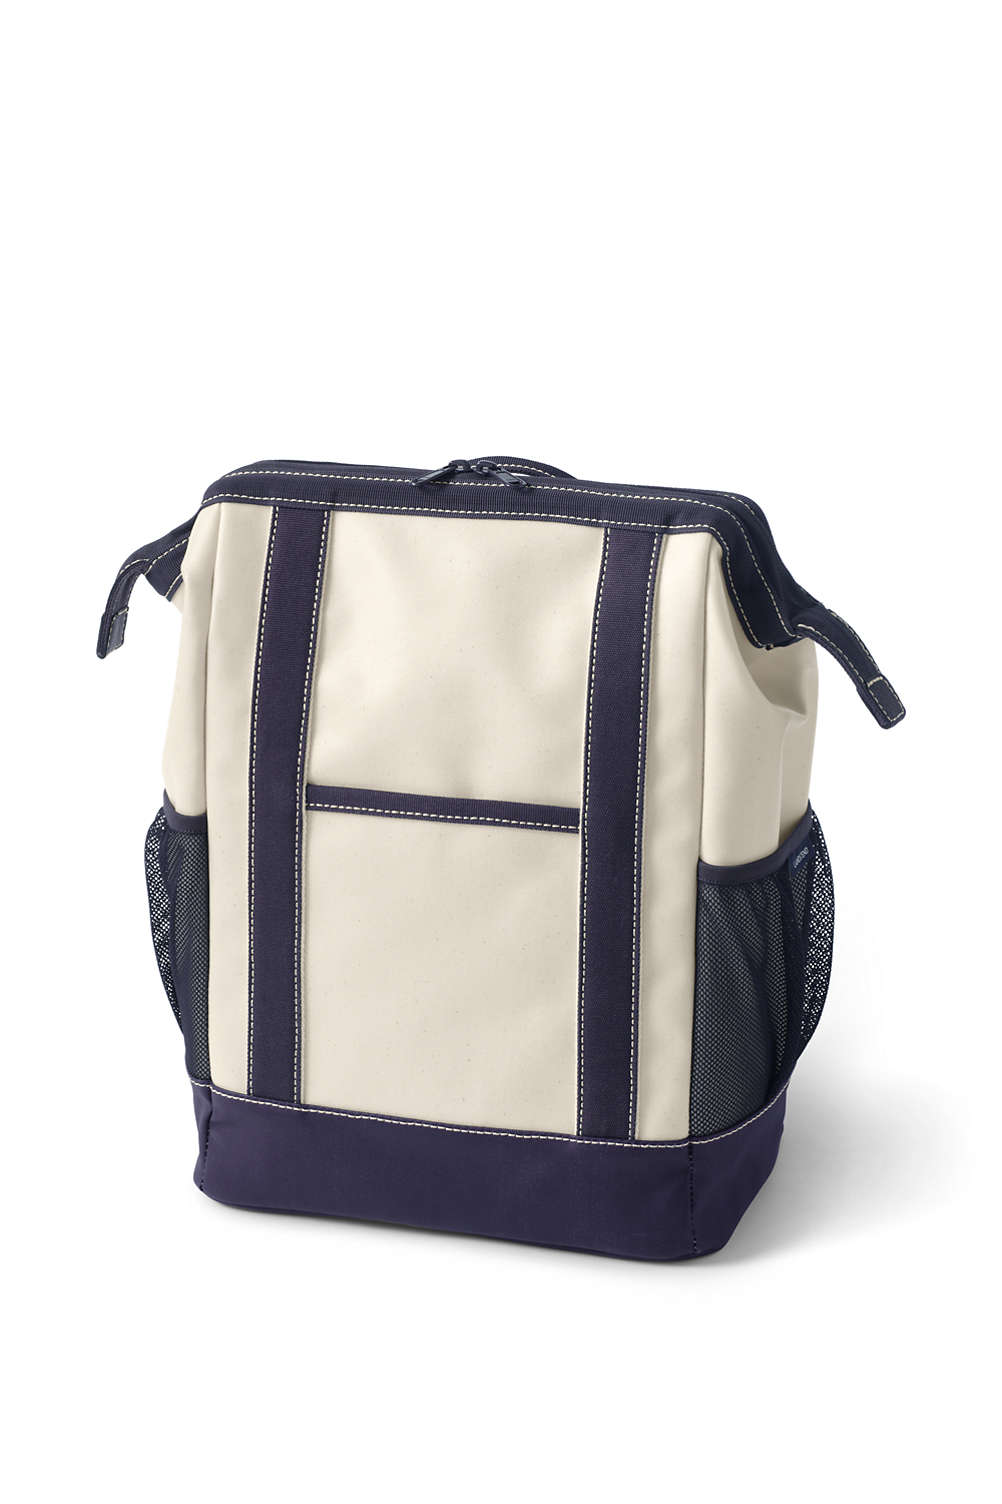 Coated Canvas Insulated Backpack Cooler from Lands  End 82a8218820b13